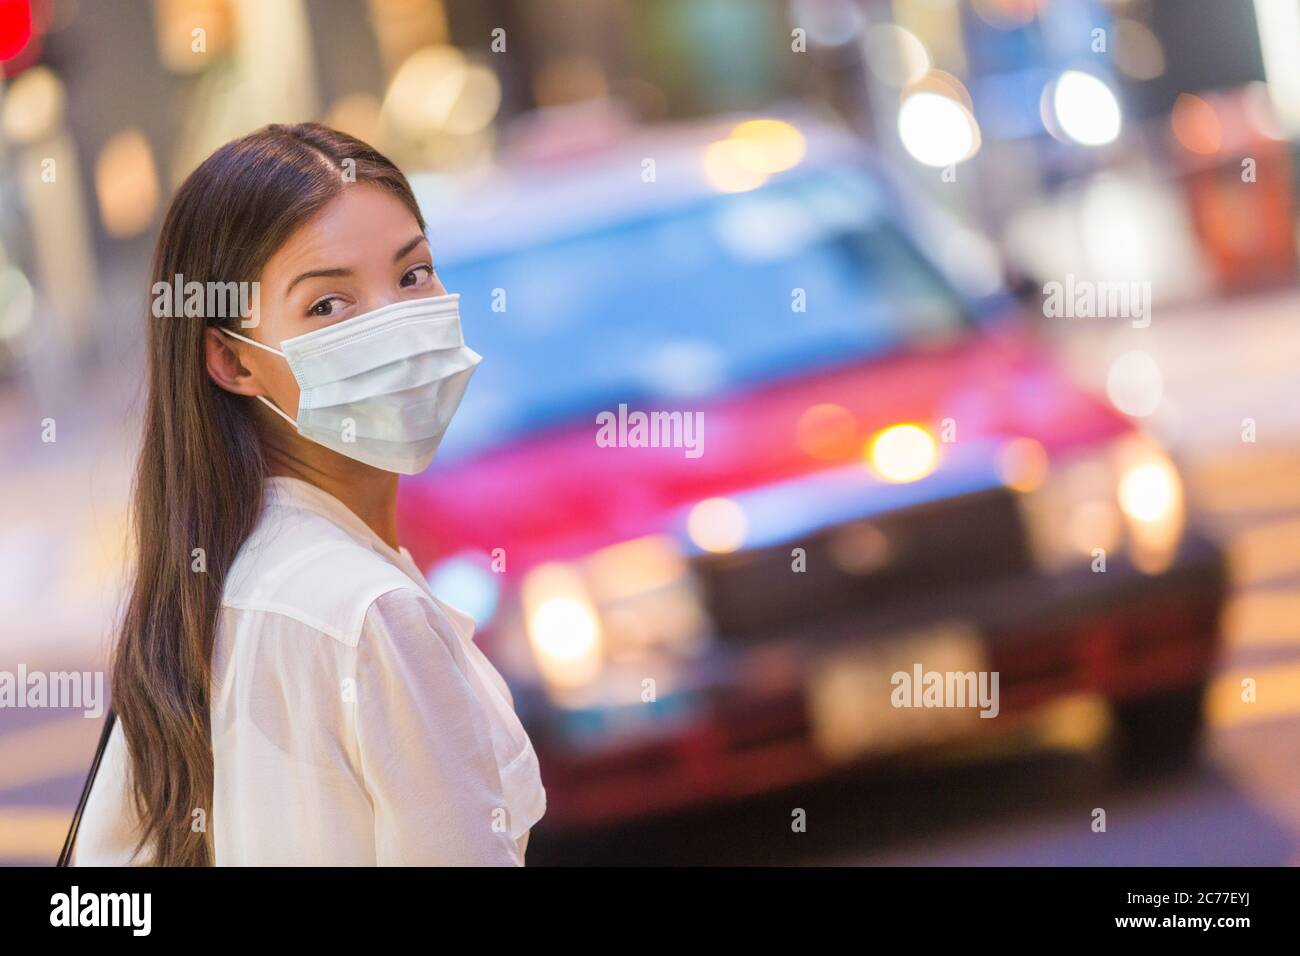 Flu disease virus spreading protection mask protective against influenza viruses and diseases. Asian woman wearing surgical mask on face in public Stock Photo